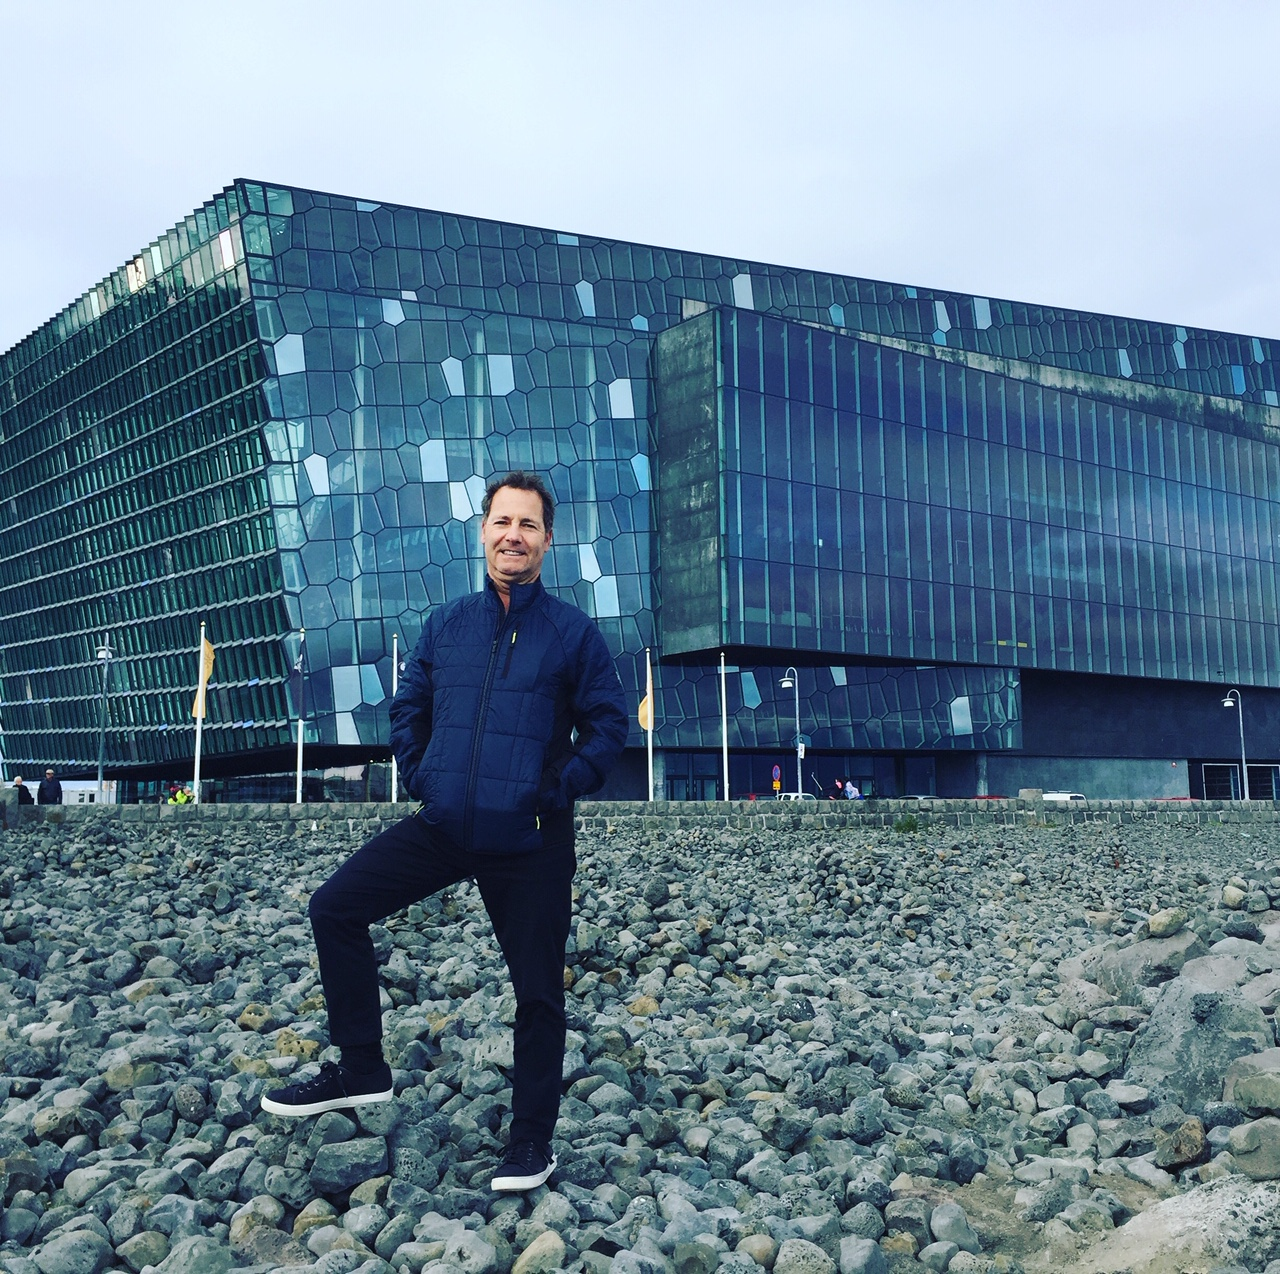 Rich Granoff in front of Harpa, a concert hall and conference center located in Reykjavik. Completed in 2011, the centralized layout with perimeter circulation allows natural daylight to flood the interior.  Image courtesy of Rich Granoff